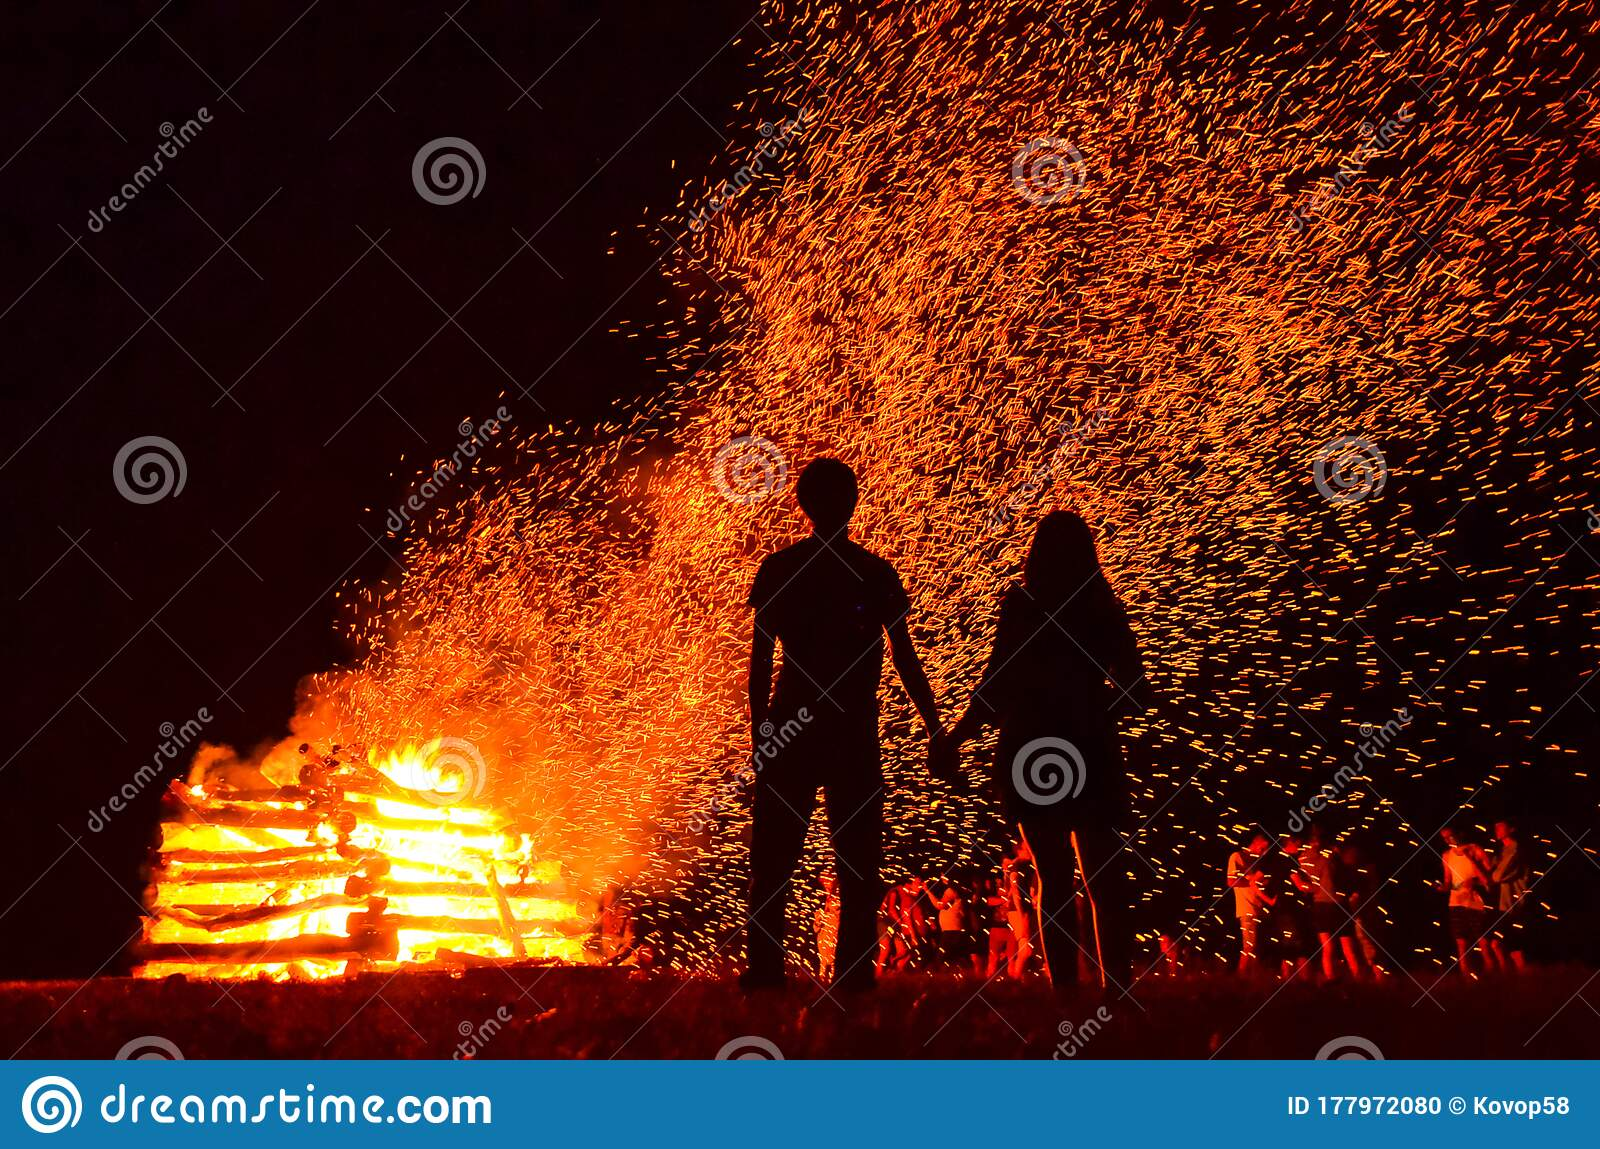 Silhouette Of Loving Couple In Fire Background Original Wallpaper Valentine Or Wedding Theme Stock Photo Image Of Evening Silhouette 177972080